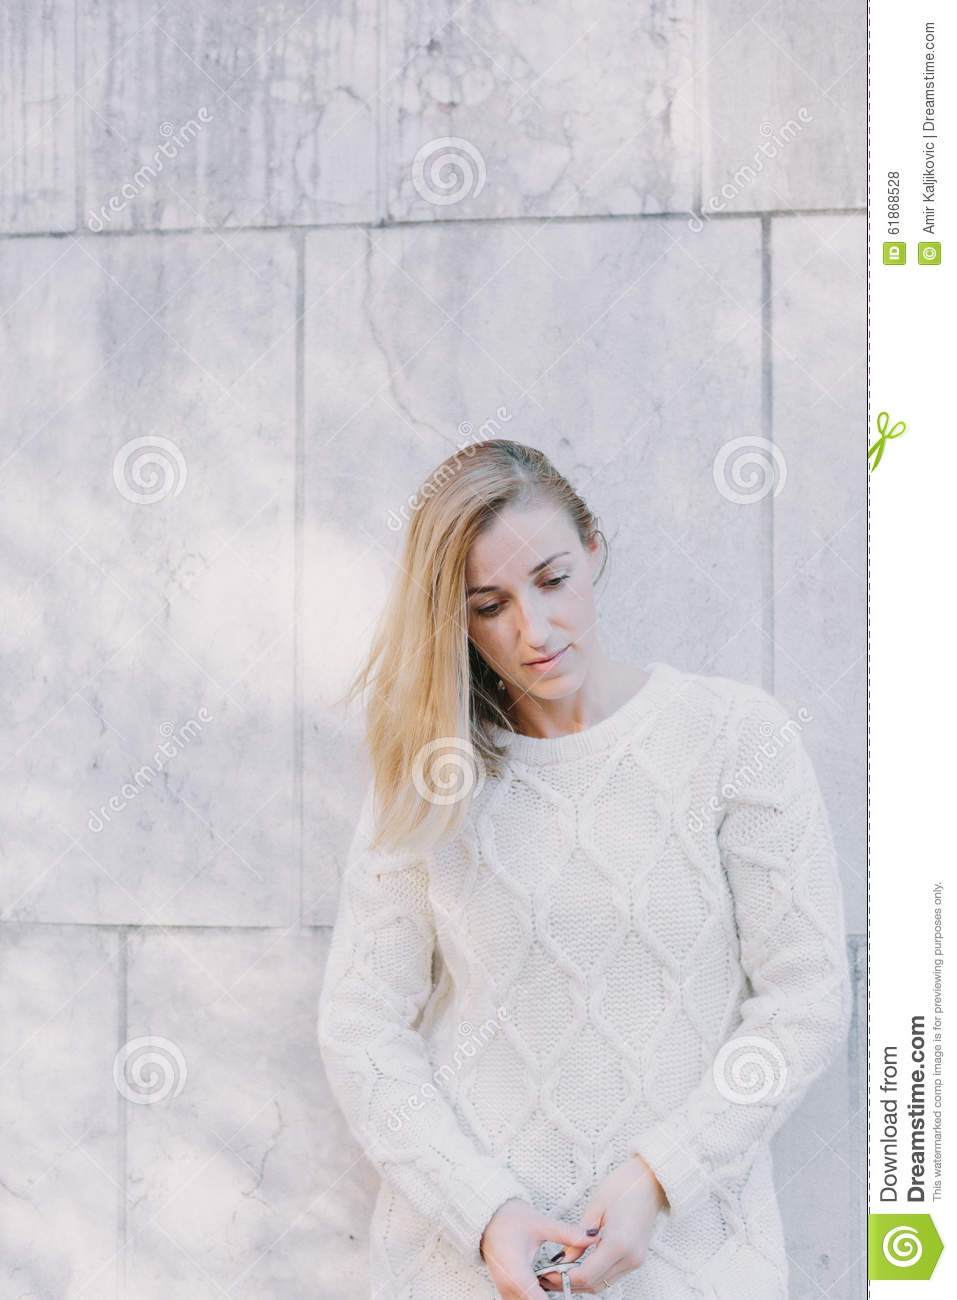 Dispirited Thoughtful Young Blond Woman Stock Photo Image